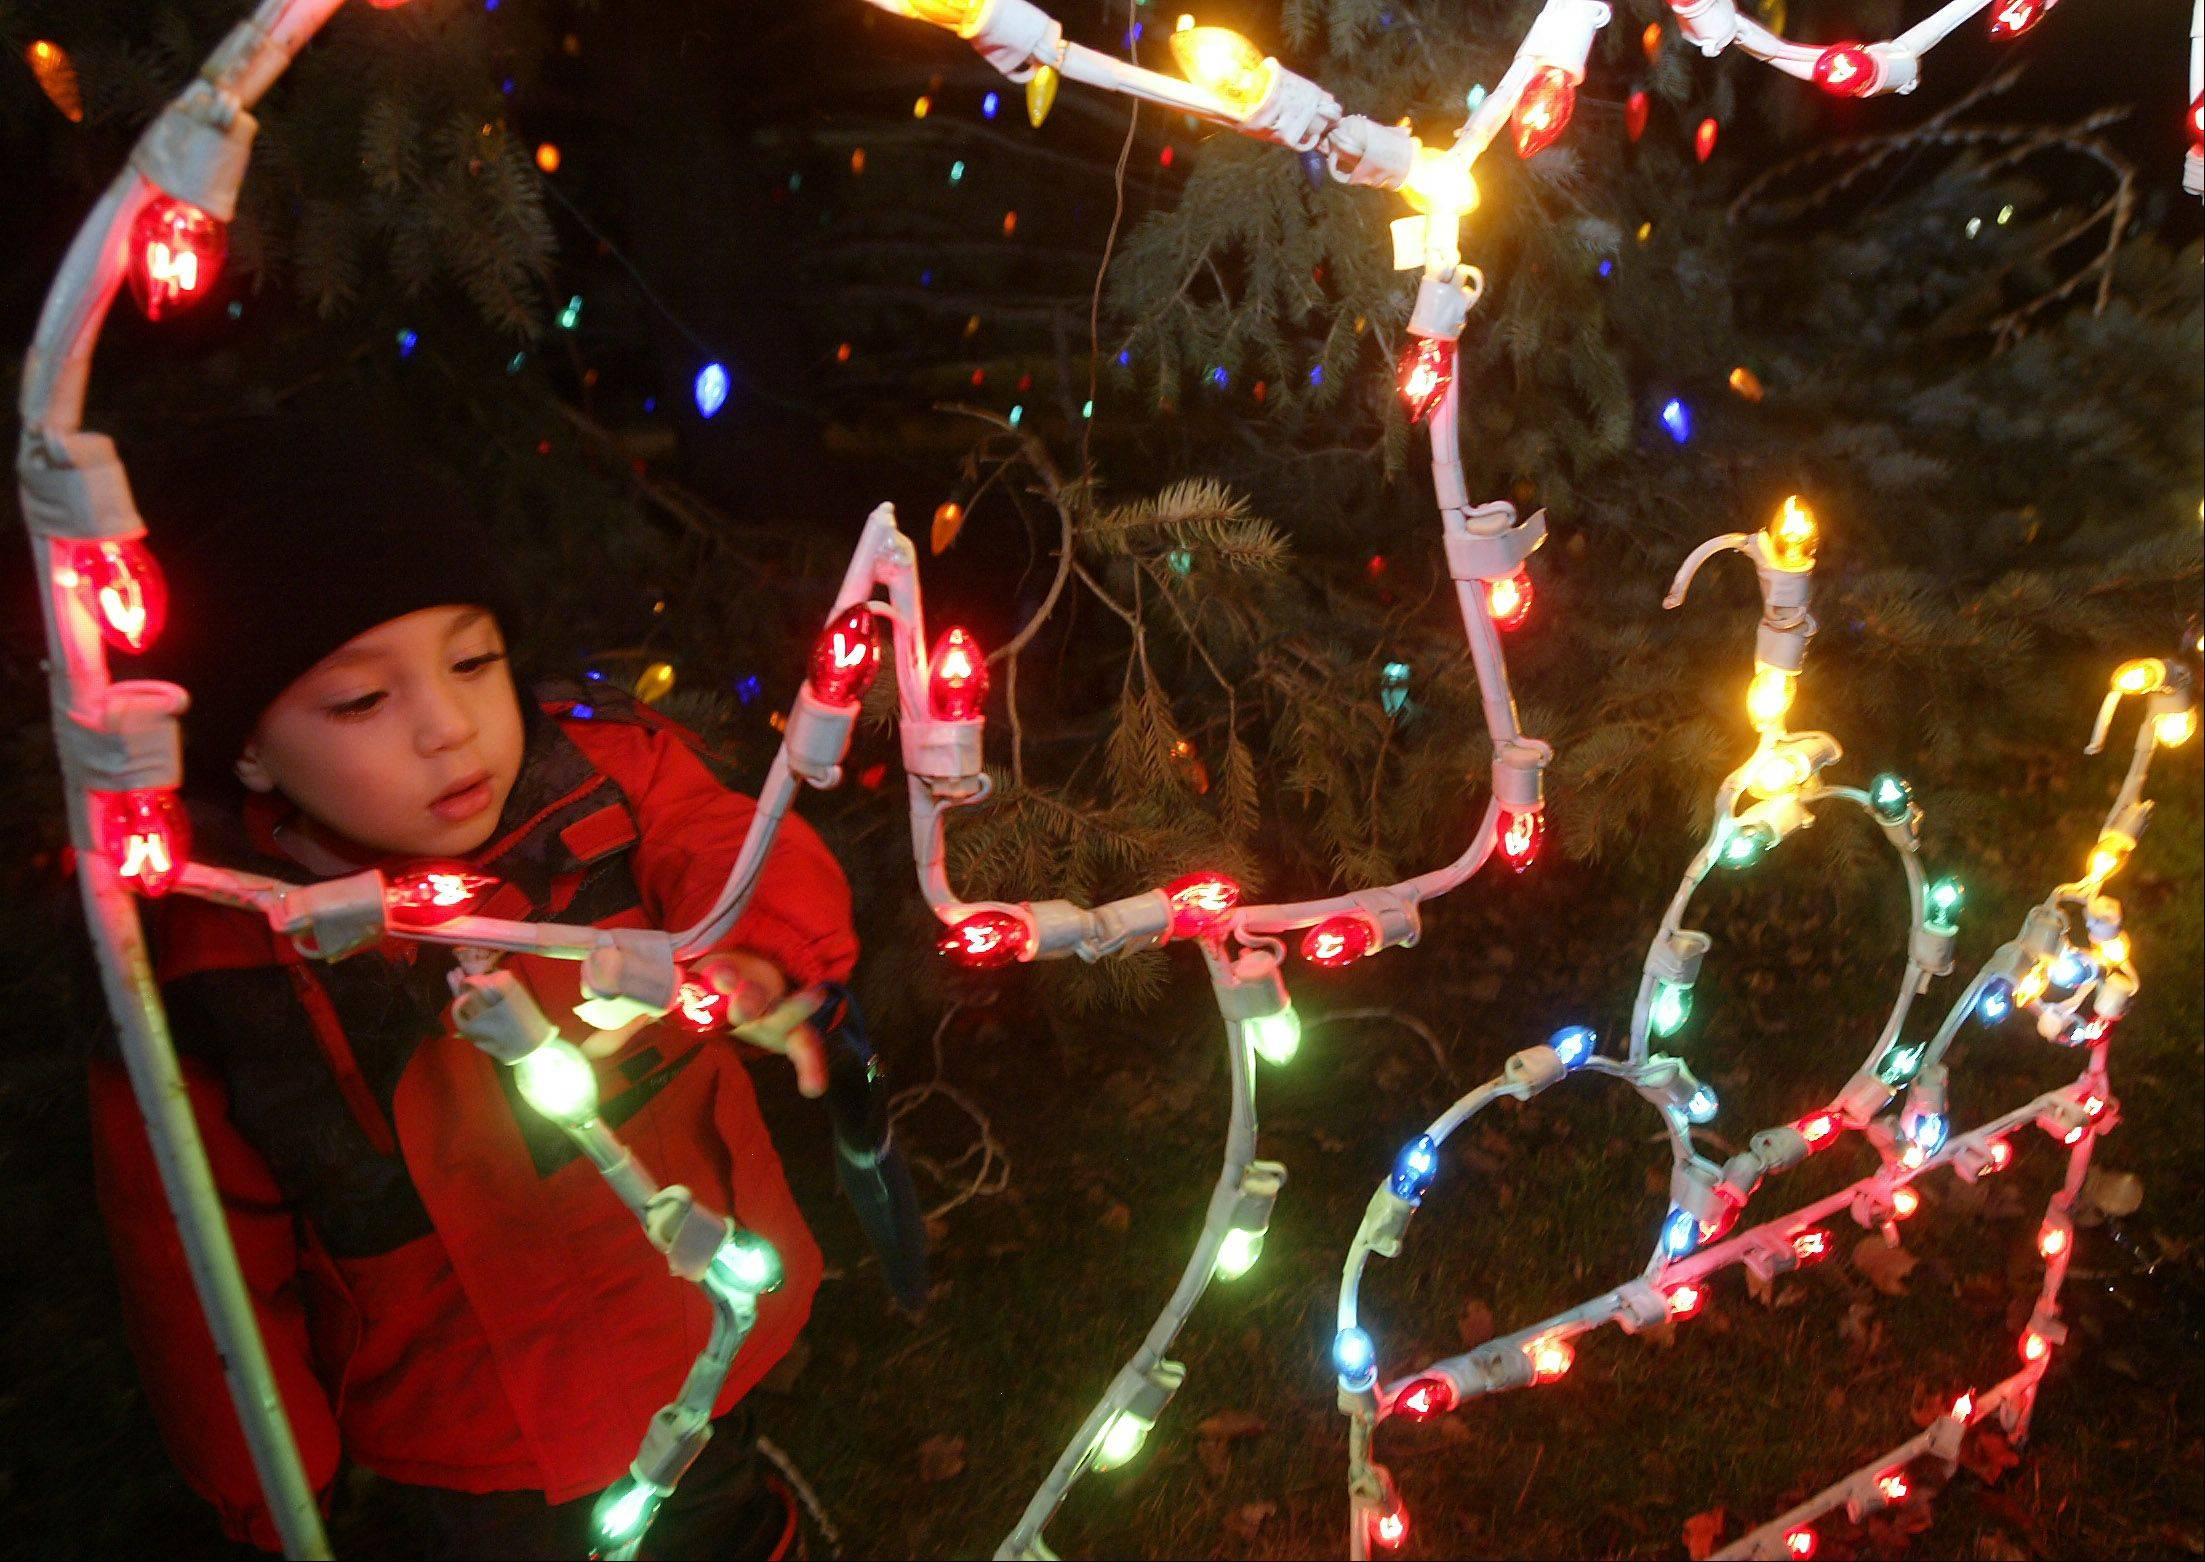 Westley Johnson, 3, of Elgin, examines lights during the last year�s tree lighting ceremony in downtown Elgin. This year�s tree lighting is set for 5 p.m. Saturday, Dec. 1.